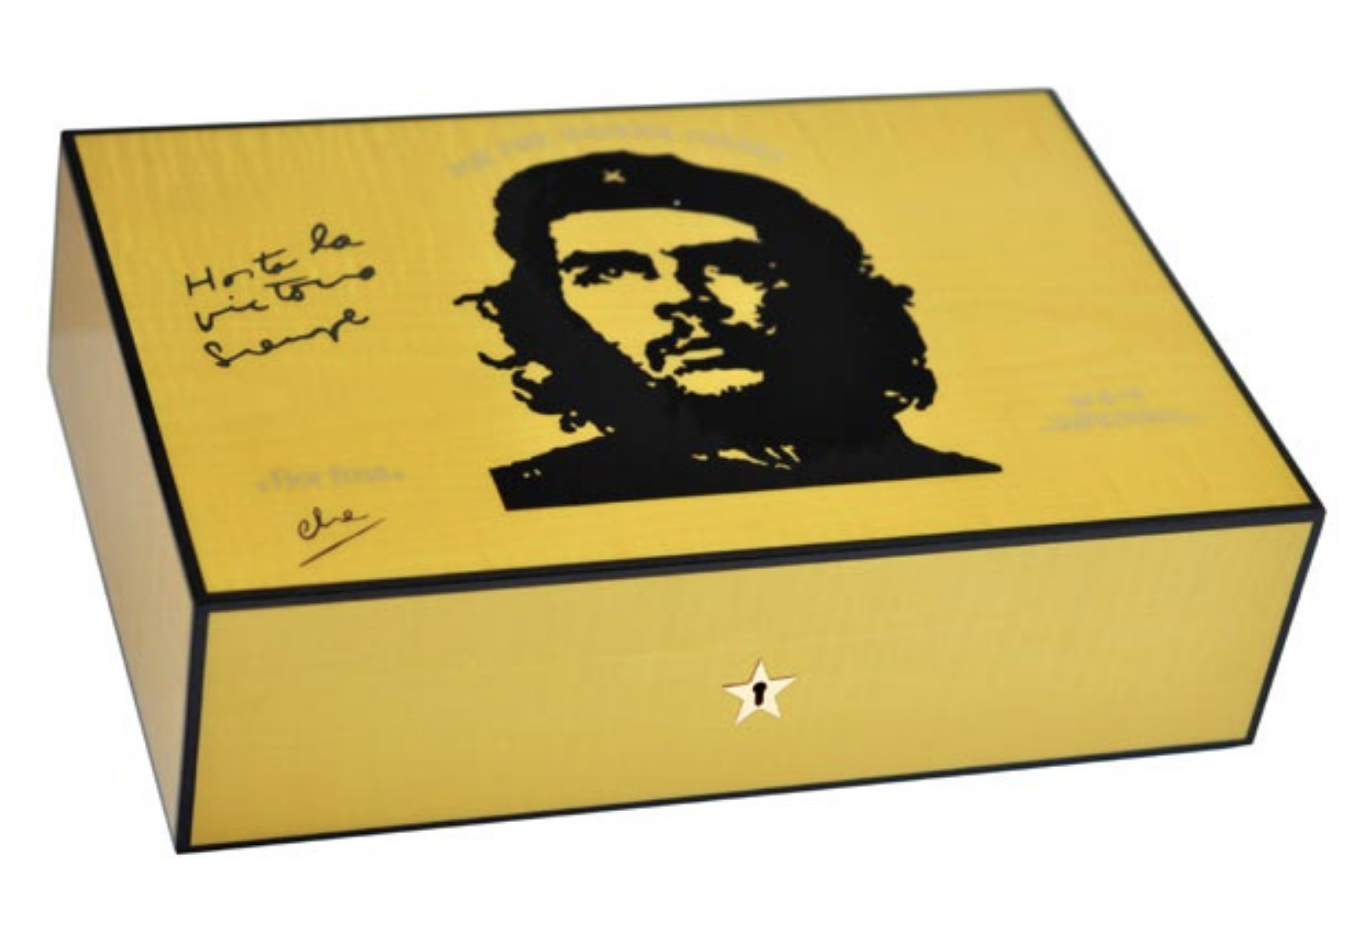 Che humidors by Elie Bleu